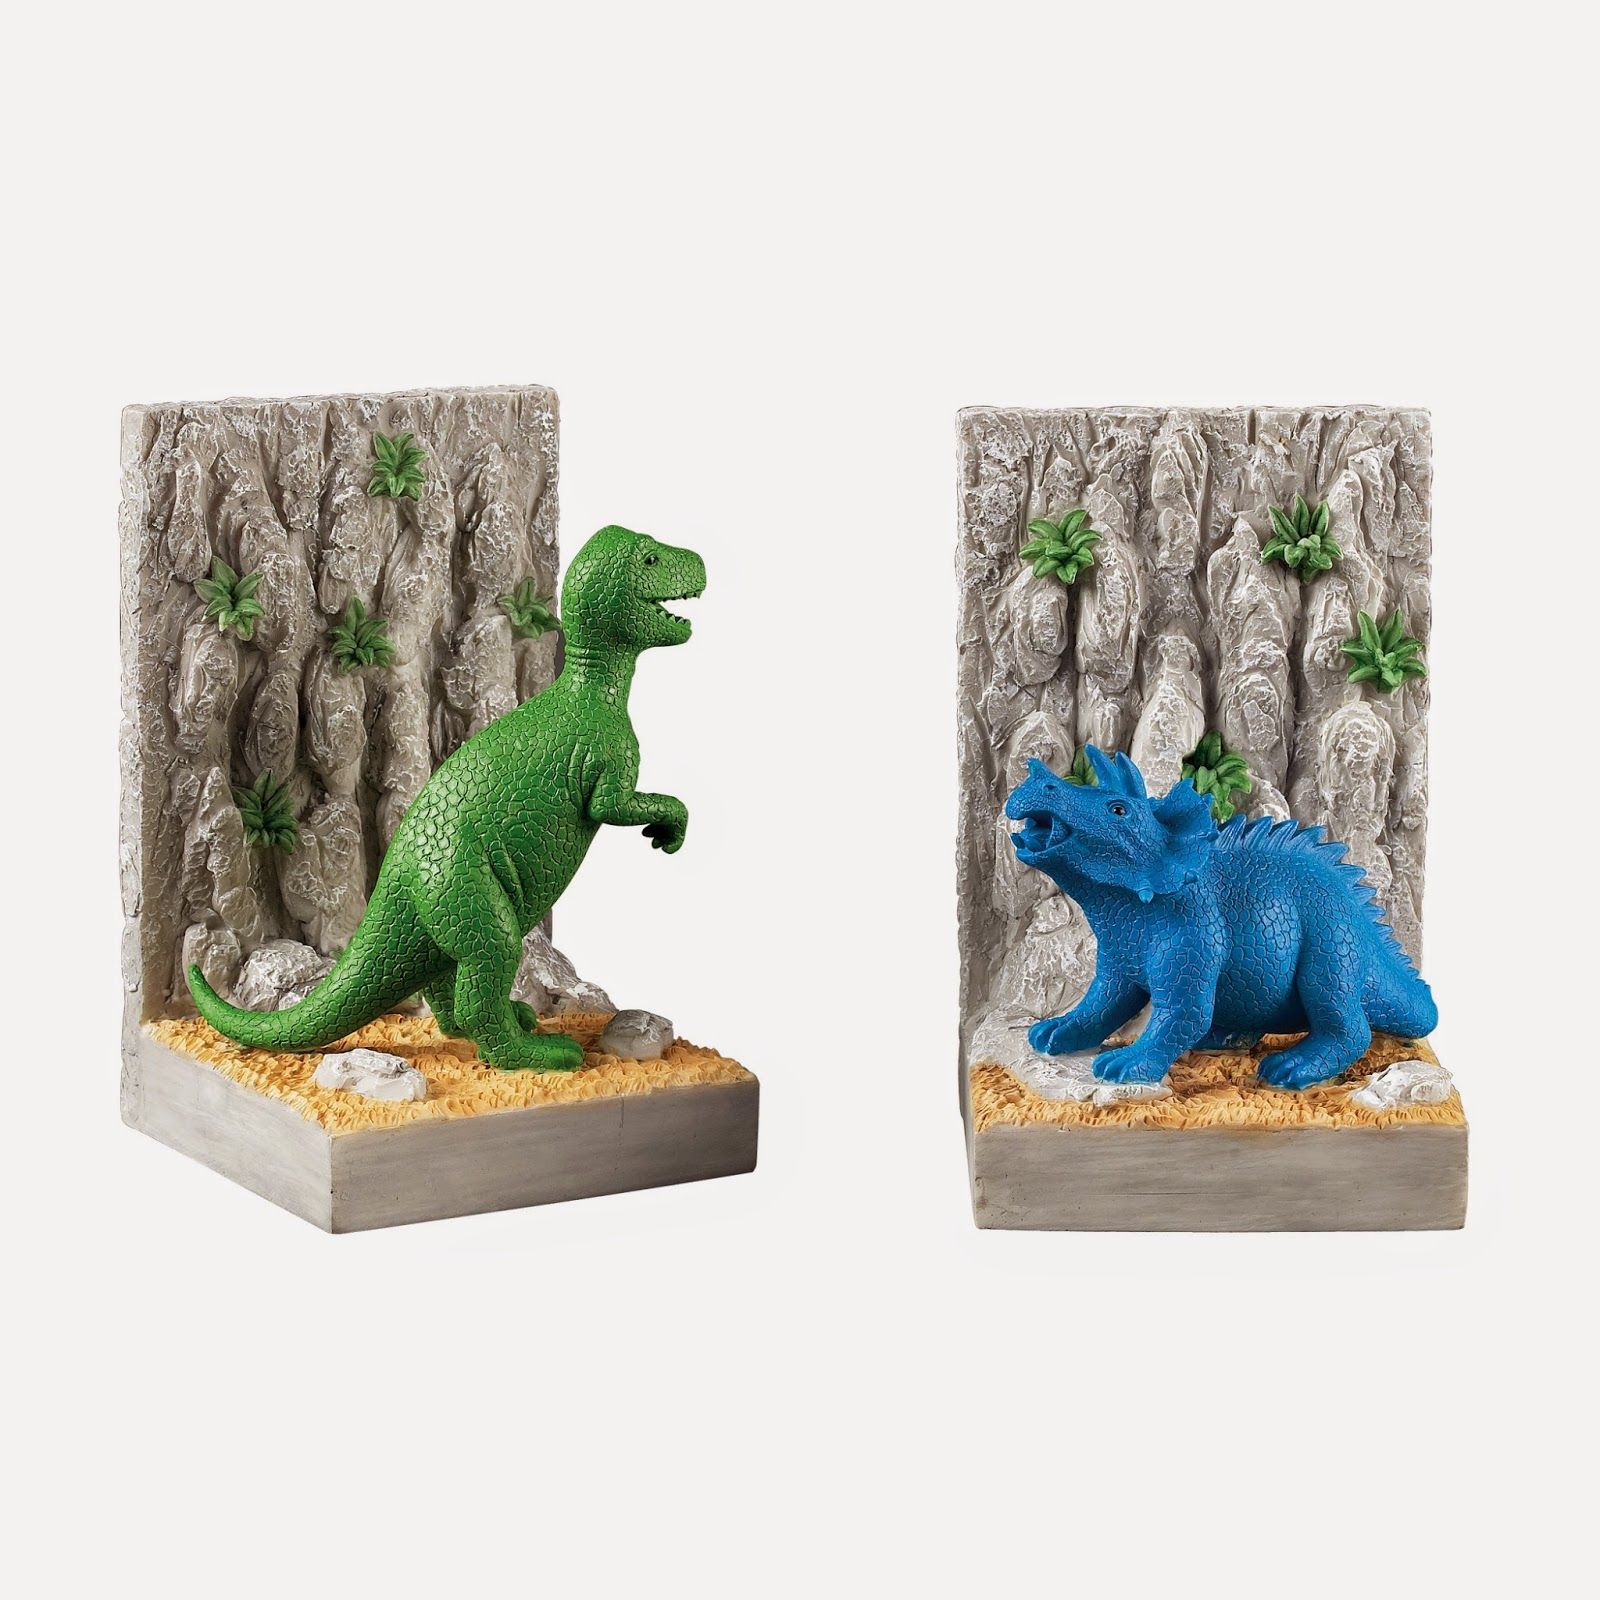 World To Home - Unique Home Decor Products